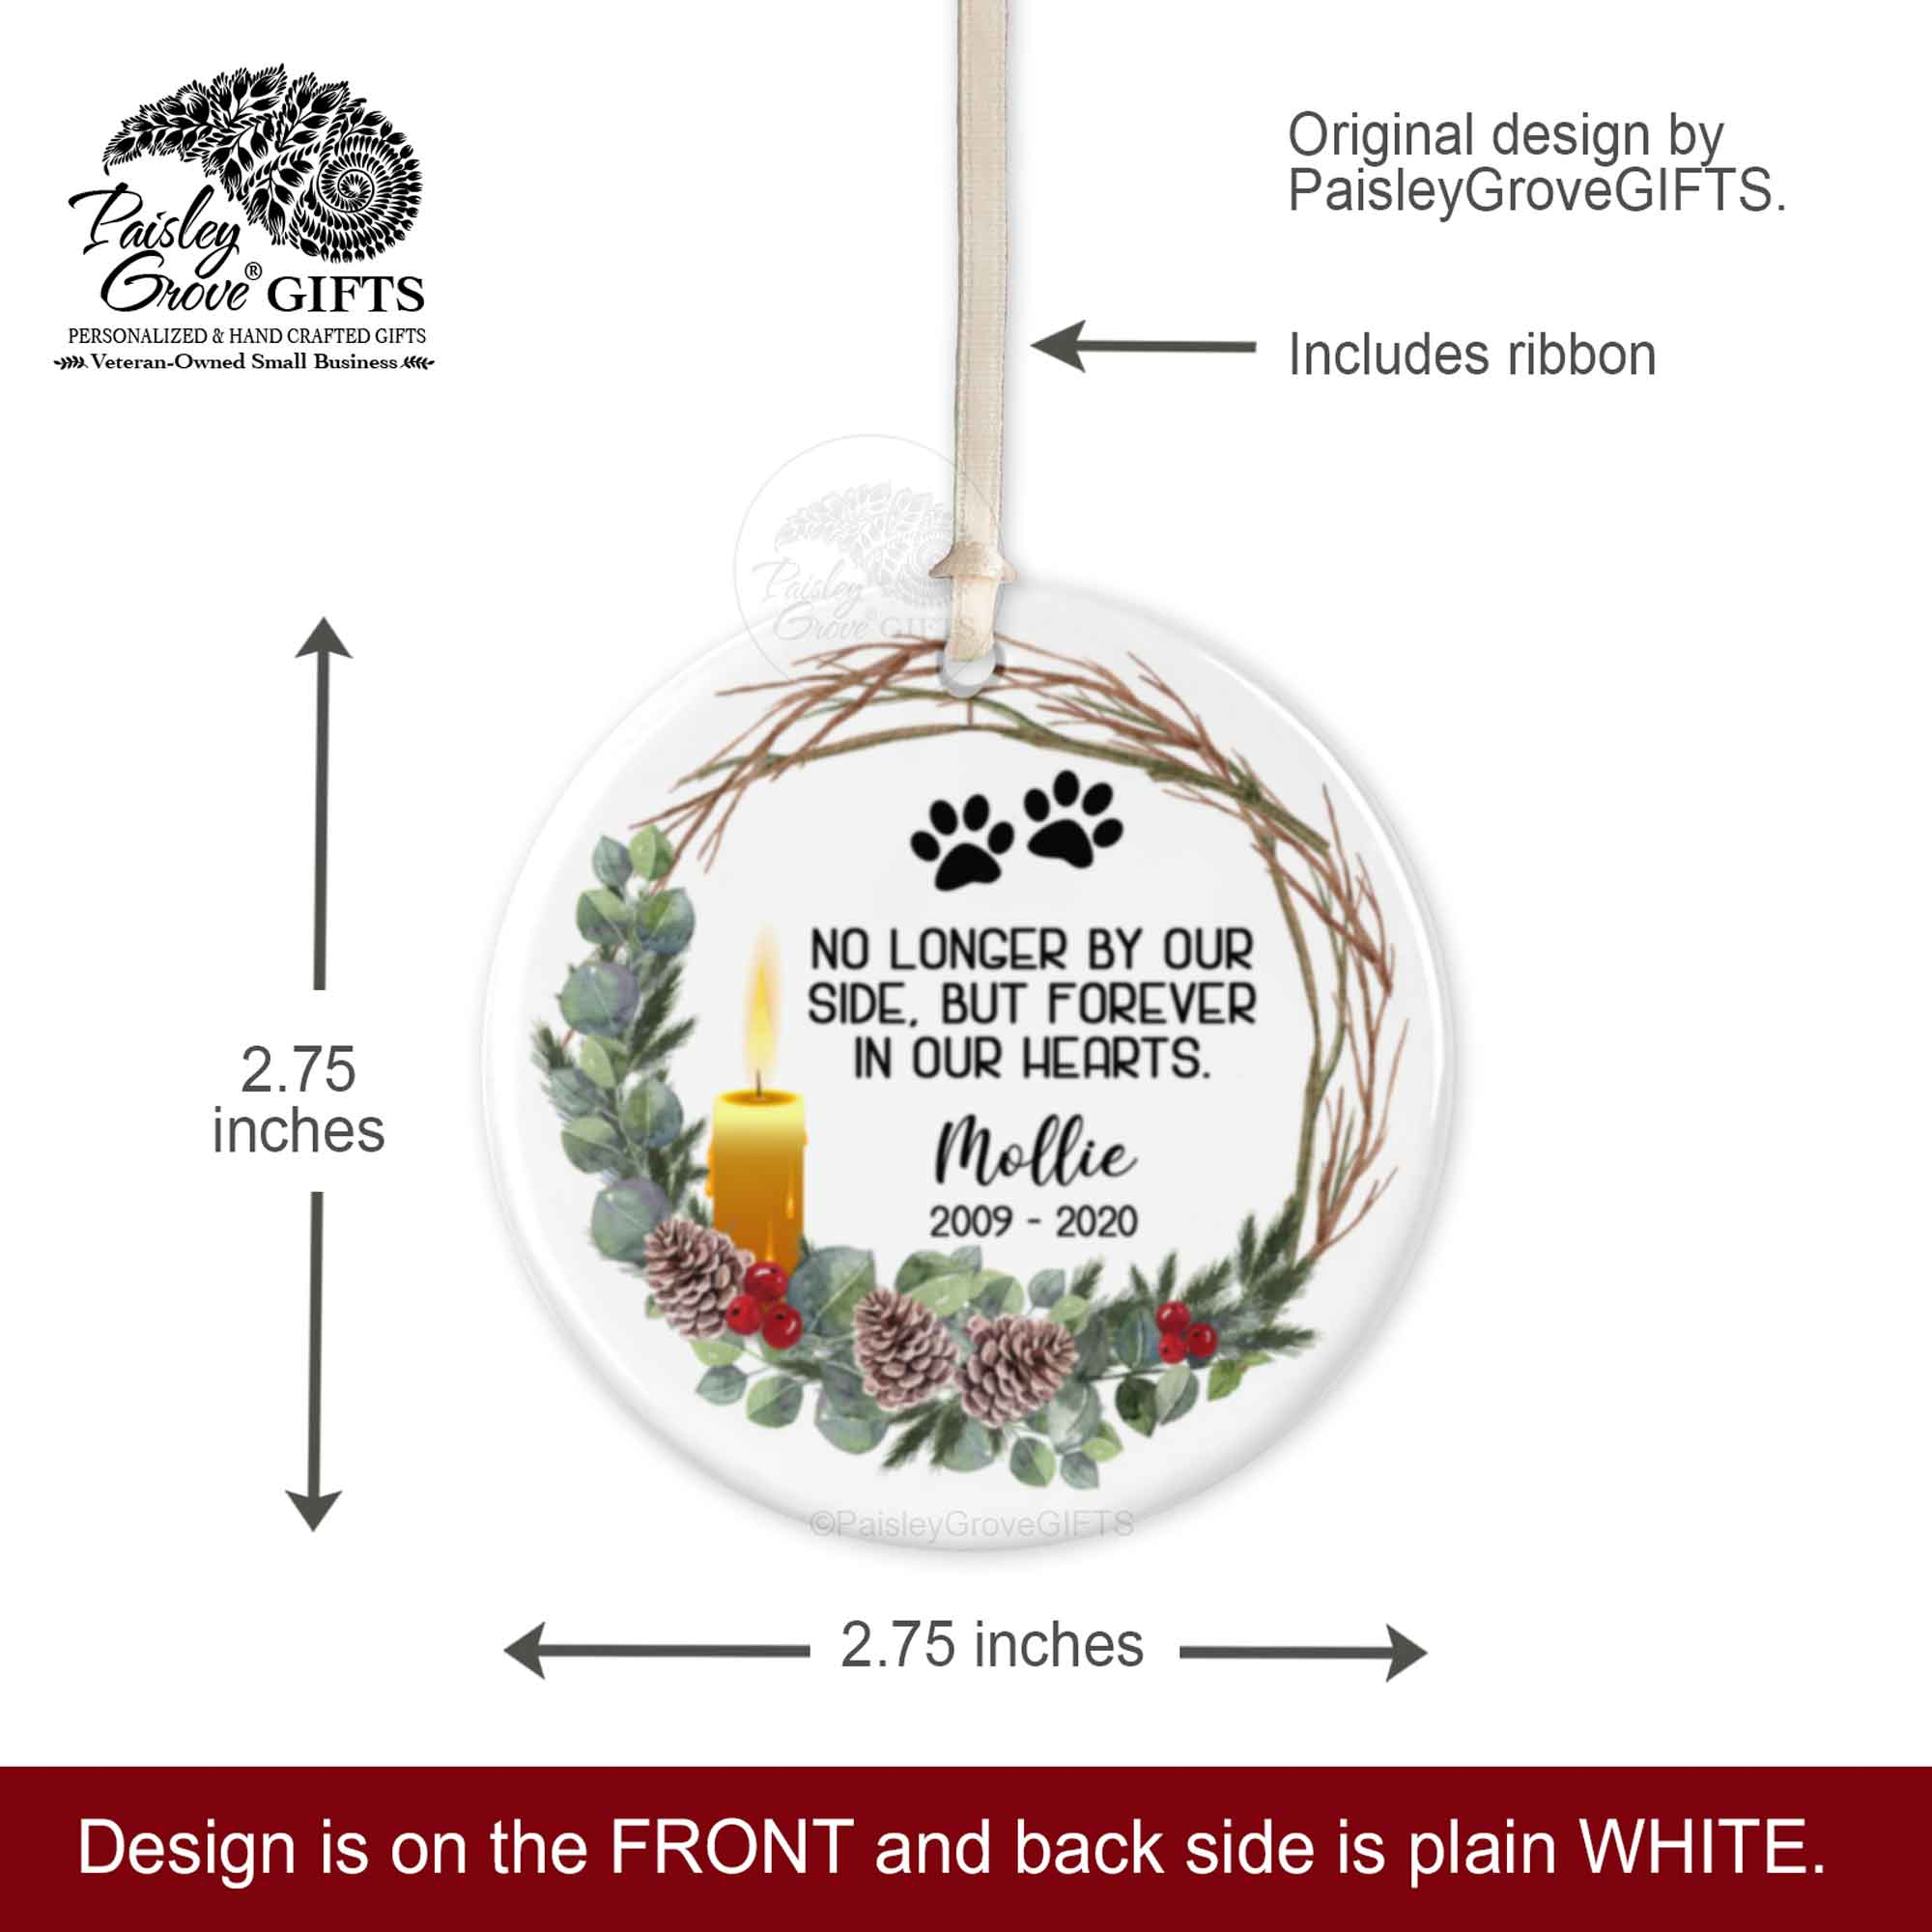 CopyrightPaisleyGroveGIFTS S522e2.75 inches round ceramic Pet Memorial Keepsake Christmas Ornament